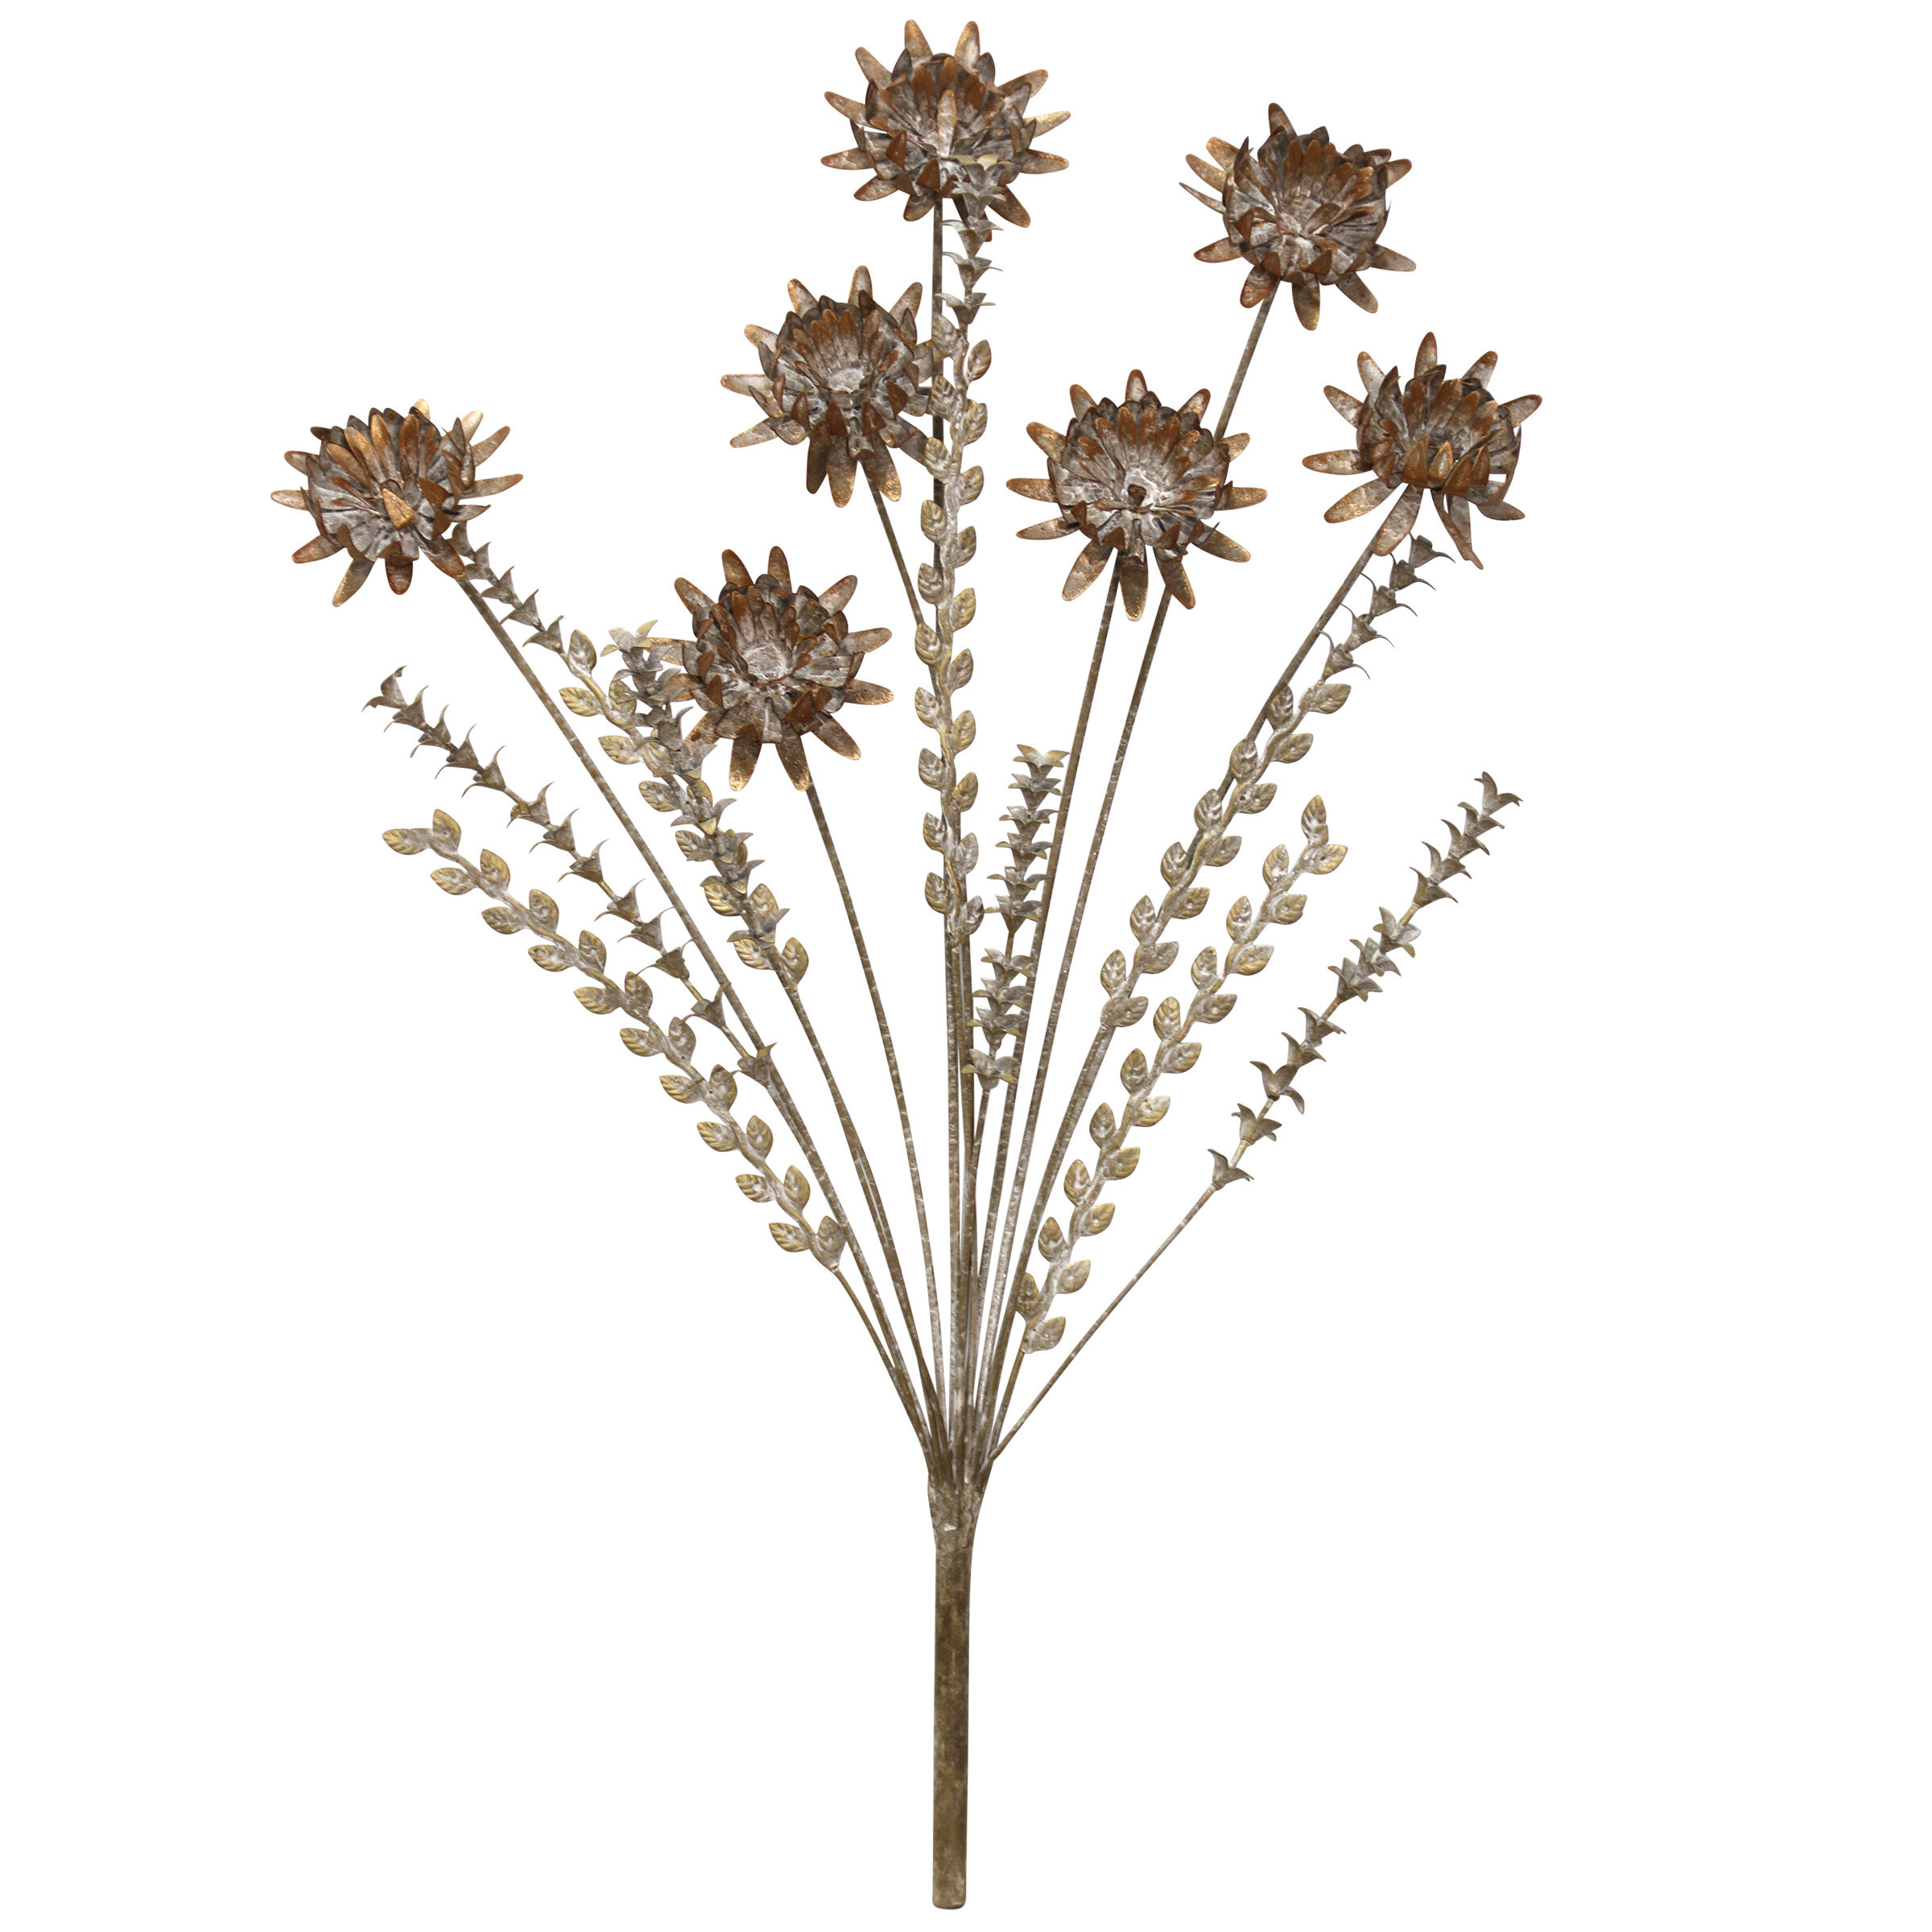 Metal Flower Wall Art | Wayfair Intended For Raheem Flowers Metal Wall Decor (View 12 of 30)